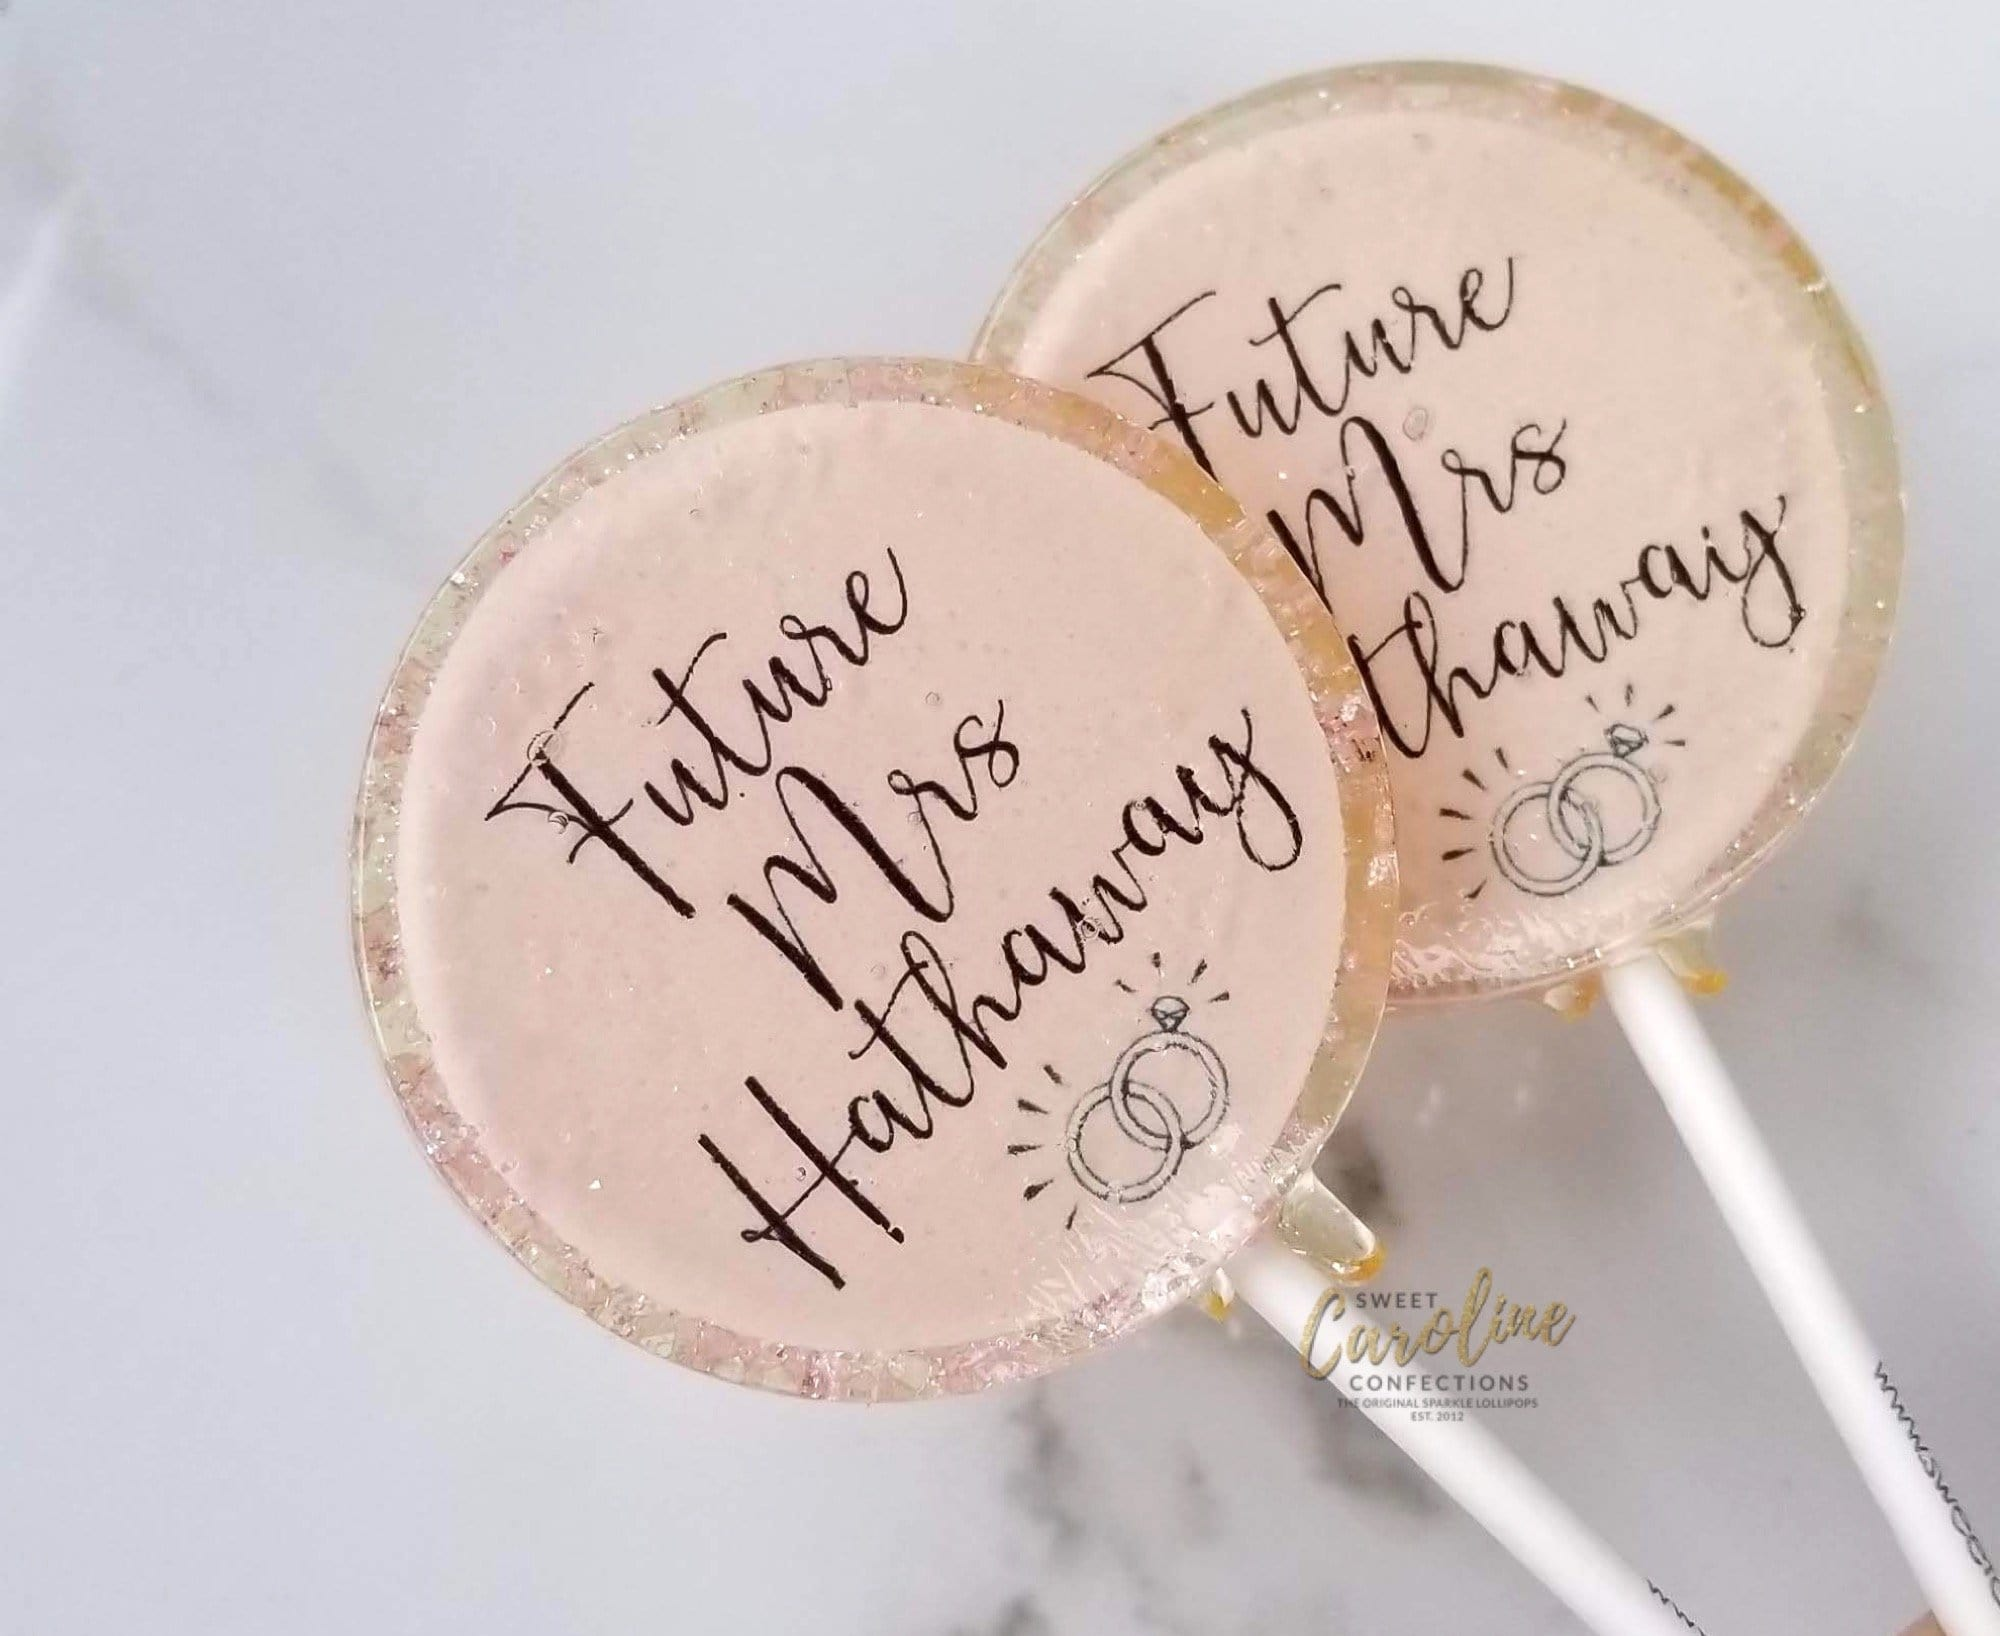 Light Pink and Gold Bridal Shower Lollipops - Set of 6 - Sweet Caroline Confections | The Original Sparkle Lollipops